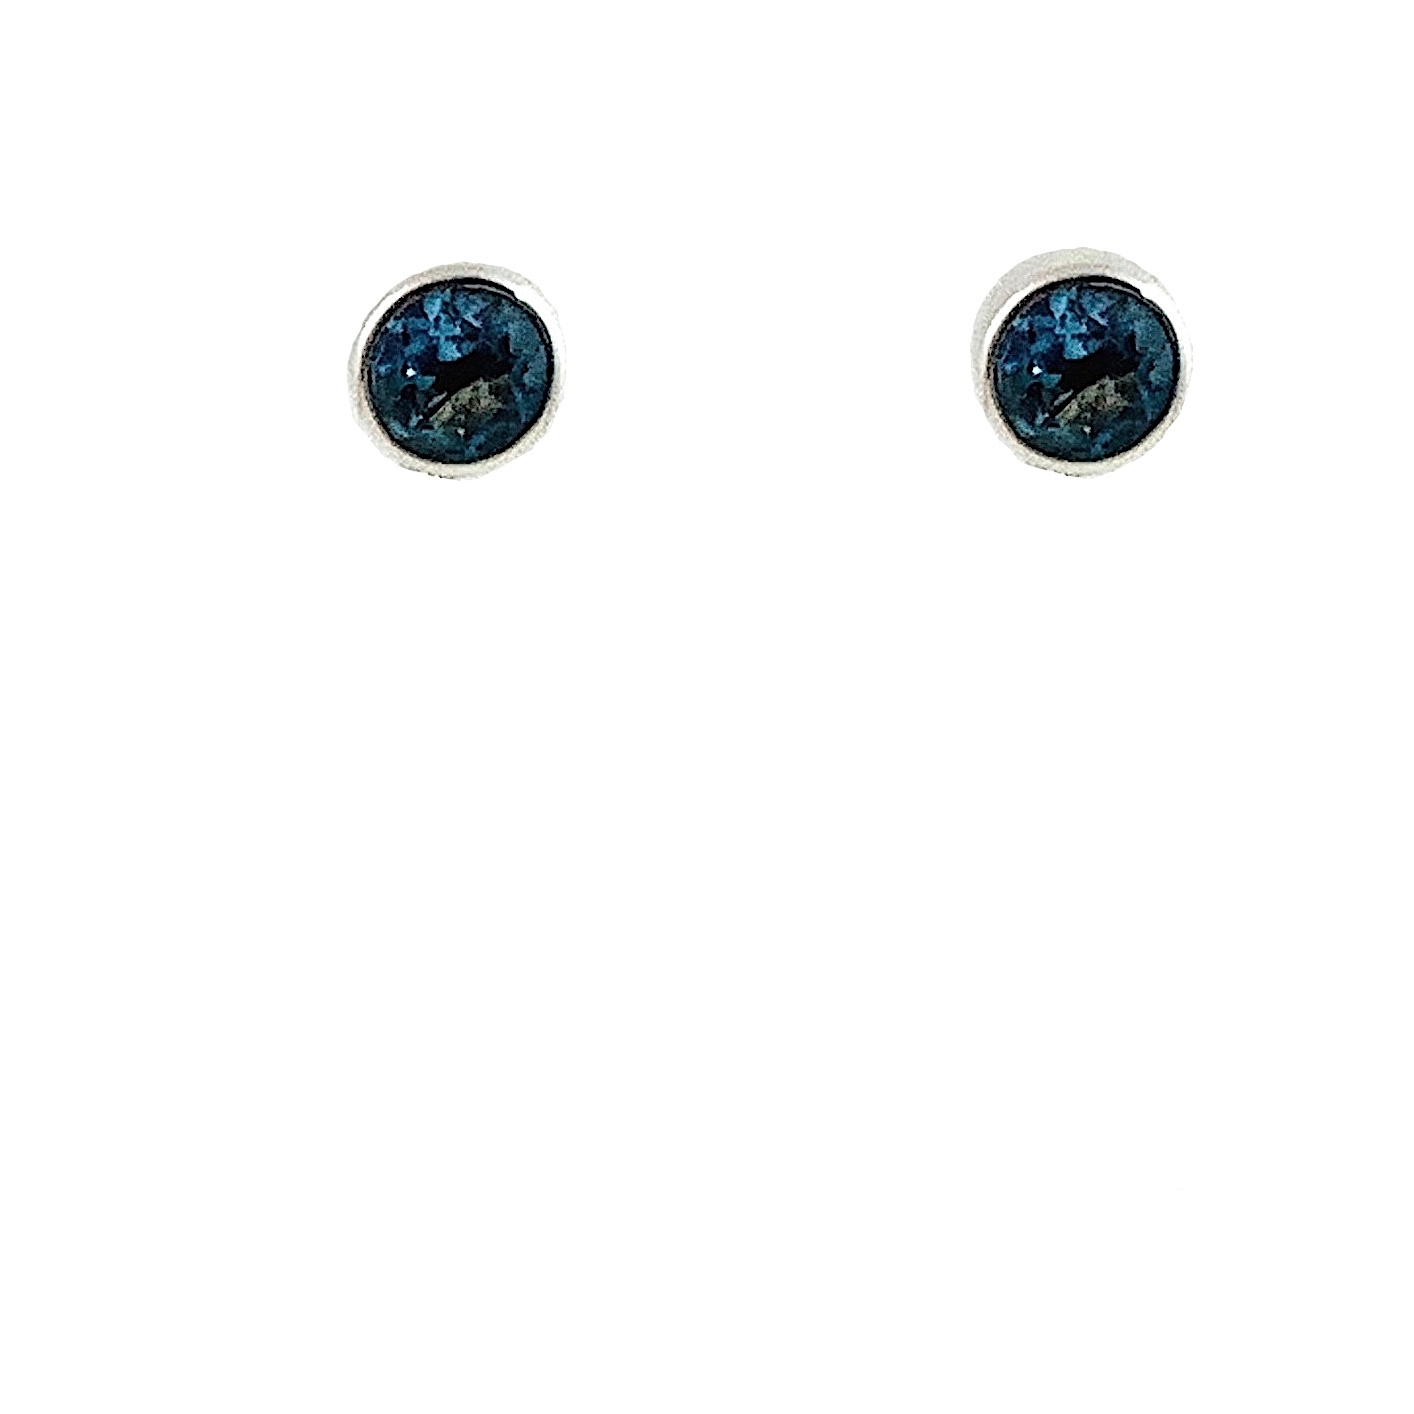 Kiliaan collectie Earstuds London blue topaz